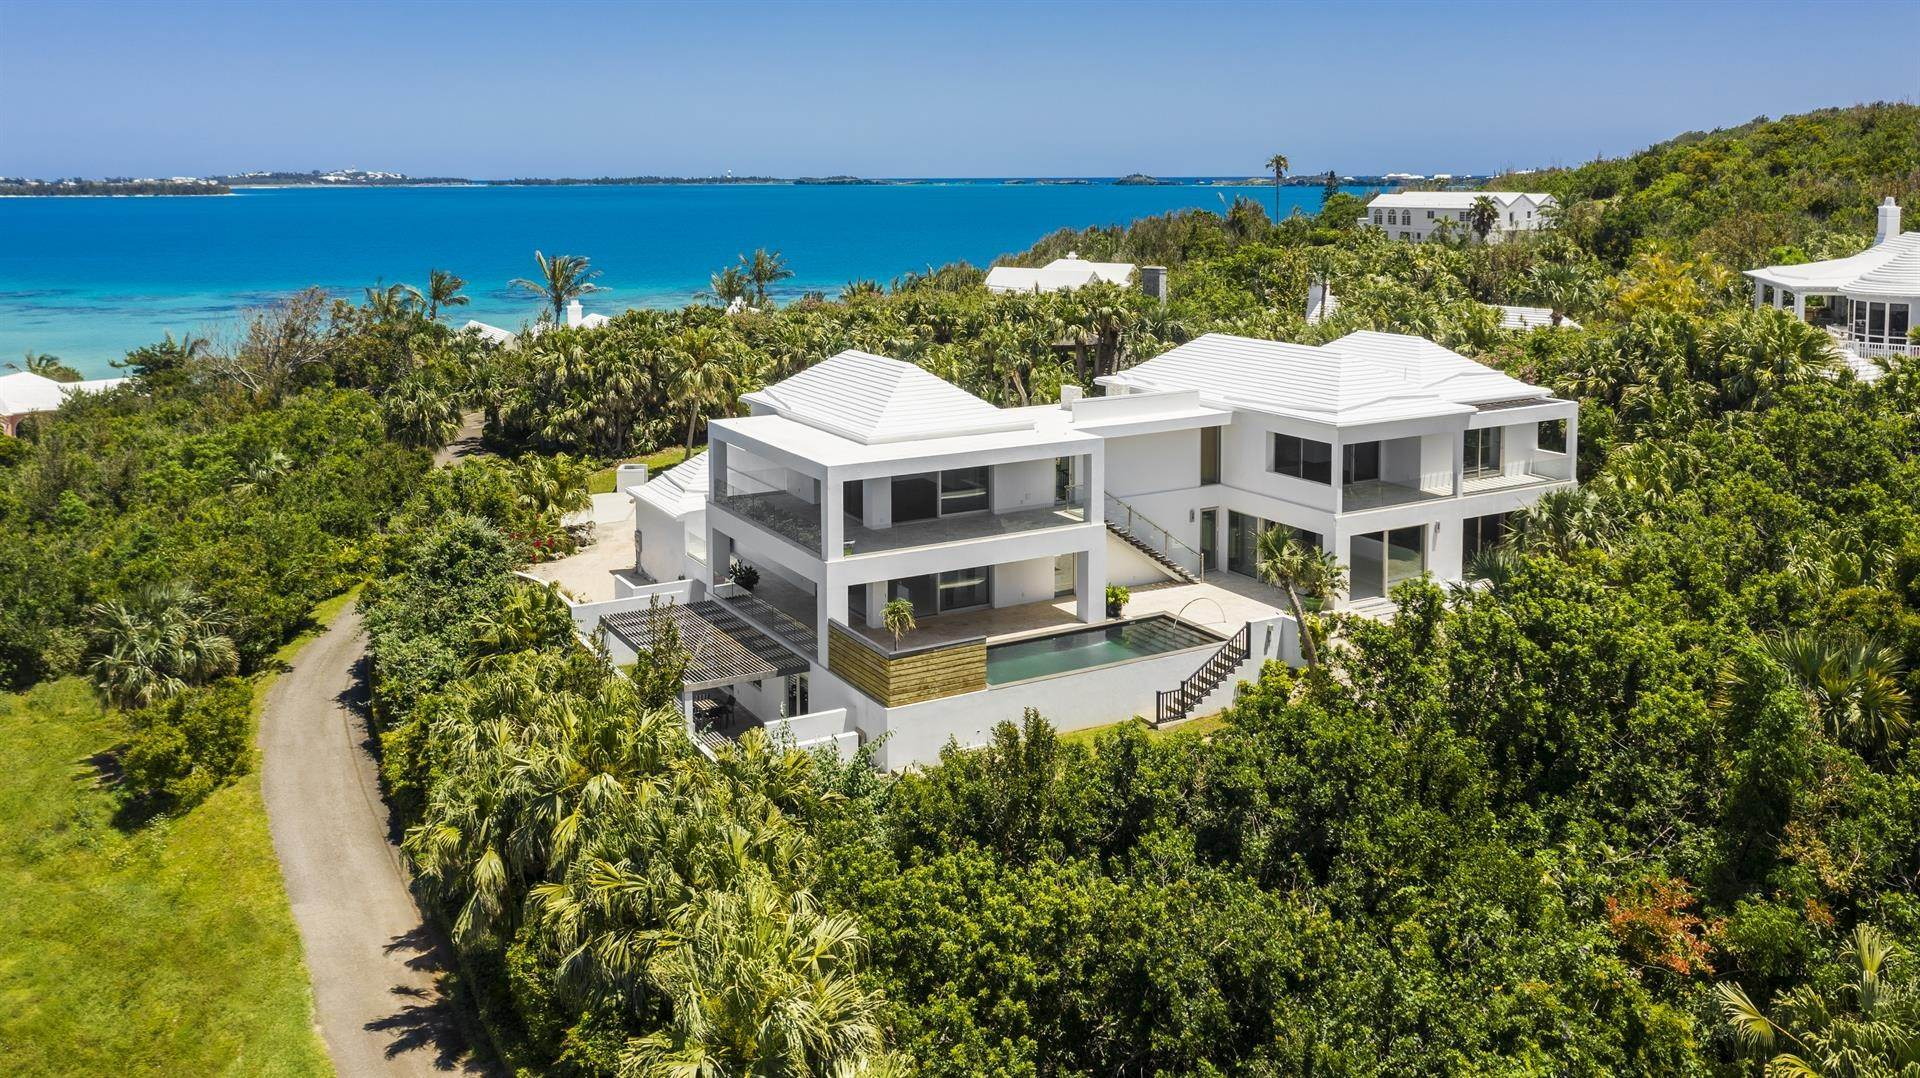 Single Family Homes für Verkauf beim Georgetown - Bermuda's Modern House Georgetown - Bermuda's Modern House, 50A Harrington Sound Road,Bermuda – Sinclair Realty